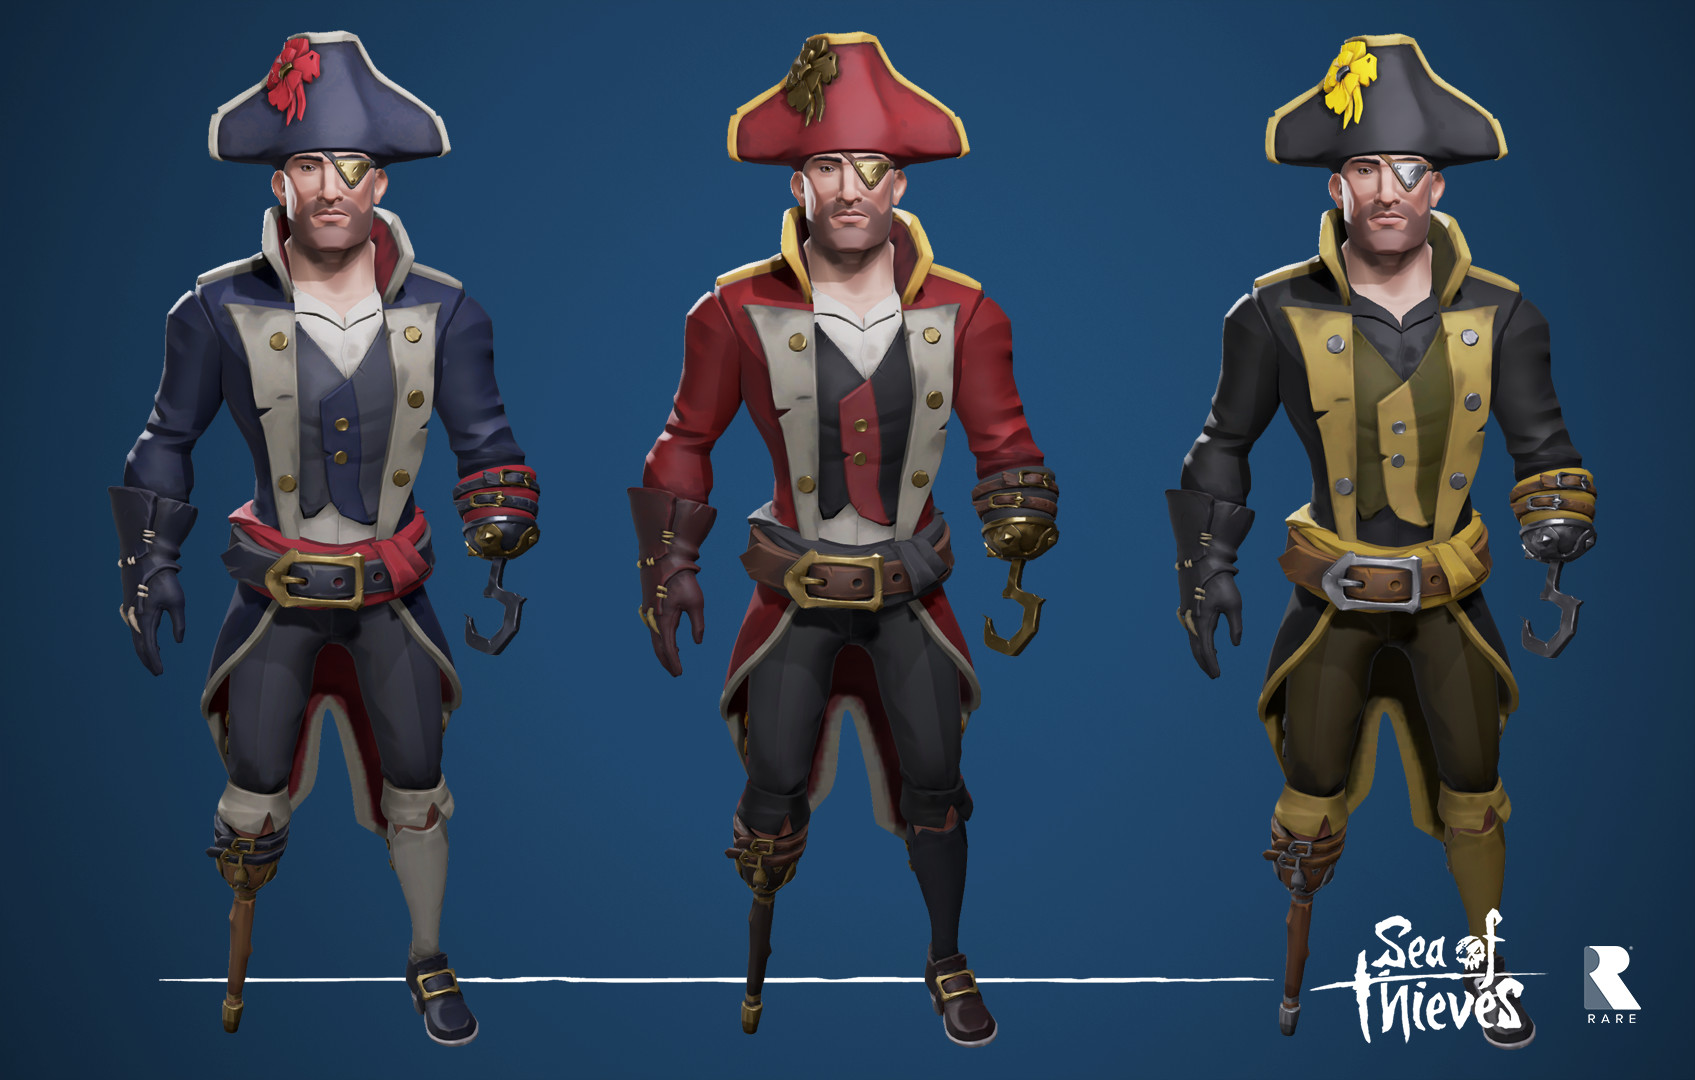 db7a133c5f6 Anniversary Cosmetics are terrible | Sea of Thieves Forum